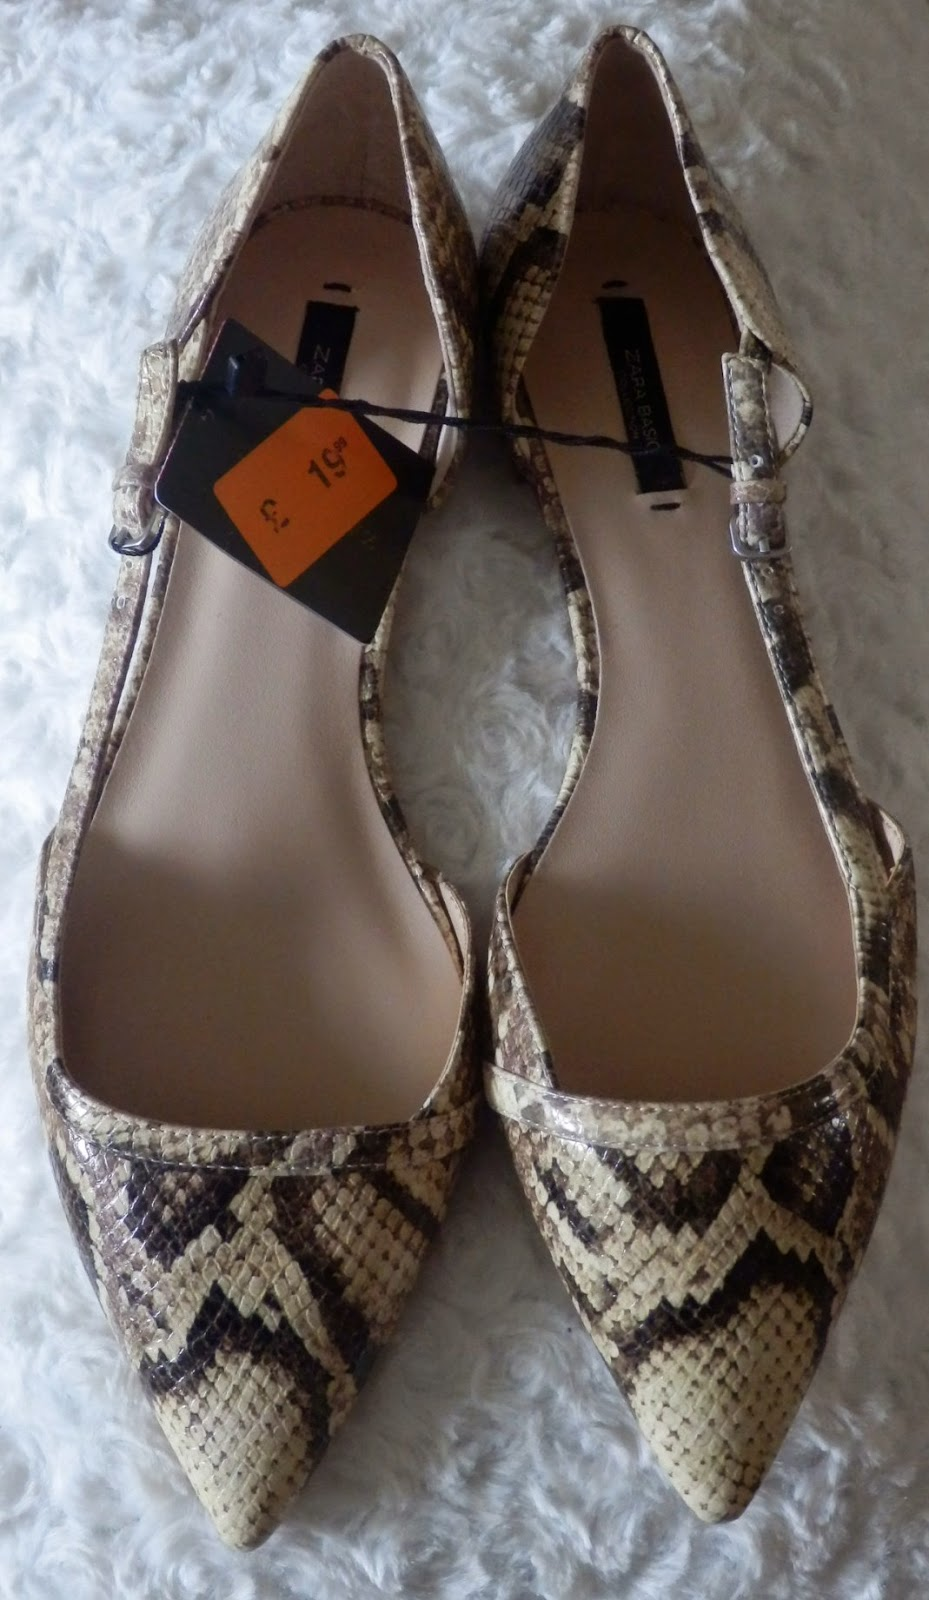 Zara Snakeskin Shoes